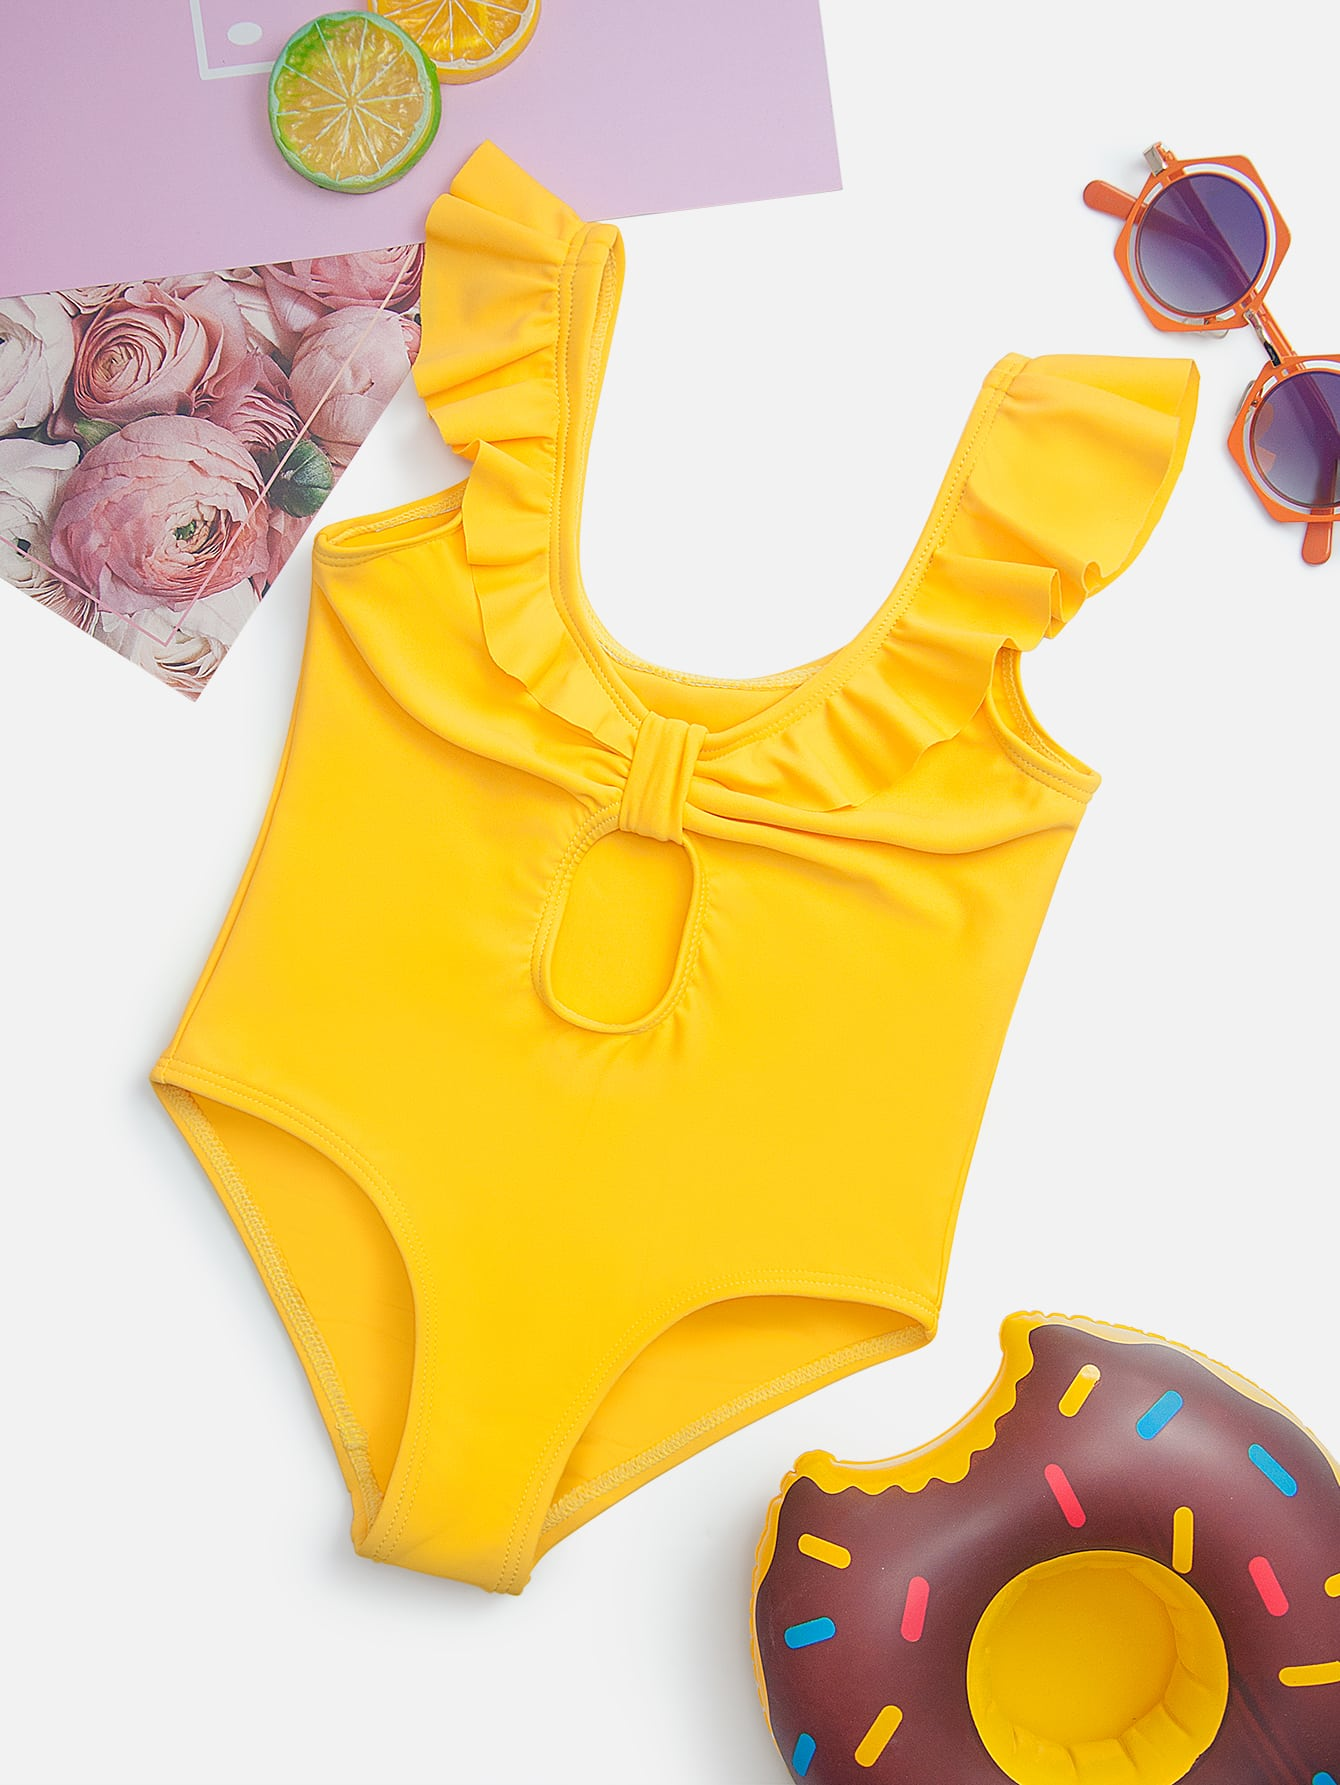 Toddler Girls Cut-out Ruffle One Piece Swimsuit - FLJ CORPORATIONS